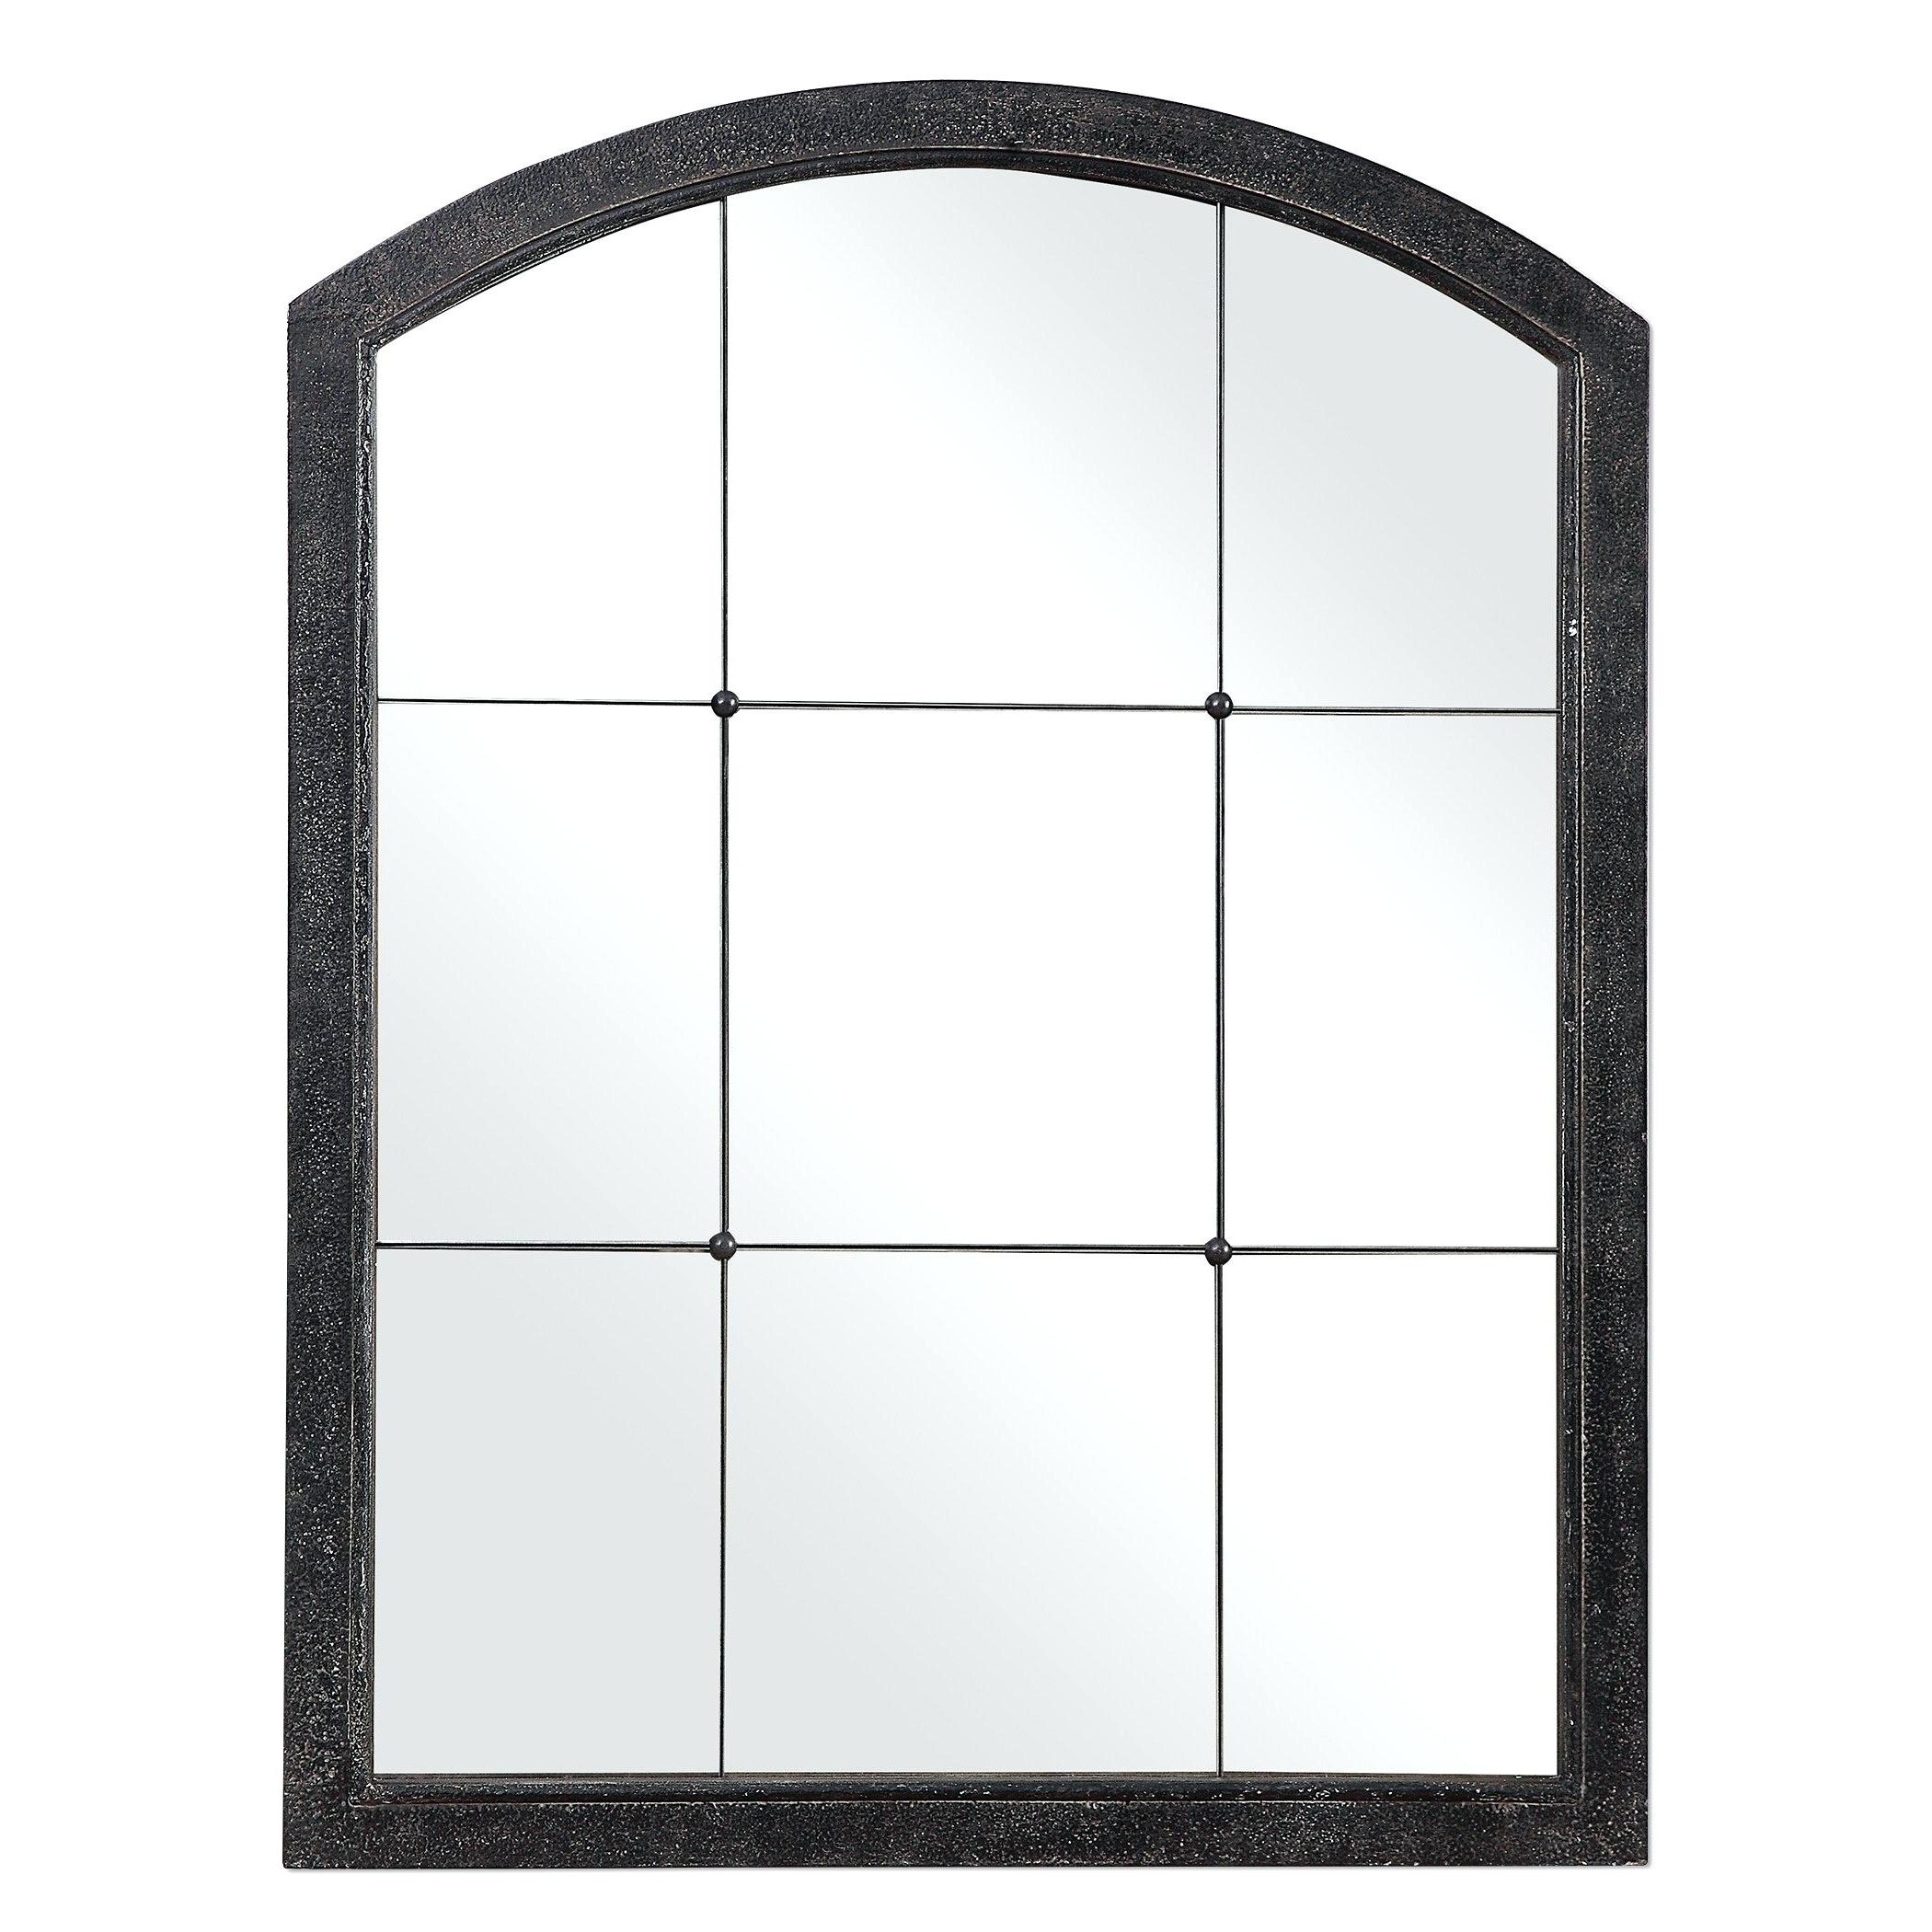 Oval Full Length Wall Mirrors With Most Current Wall Mirror – Inklabs (View 18 of 20)